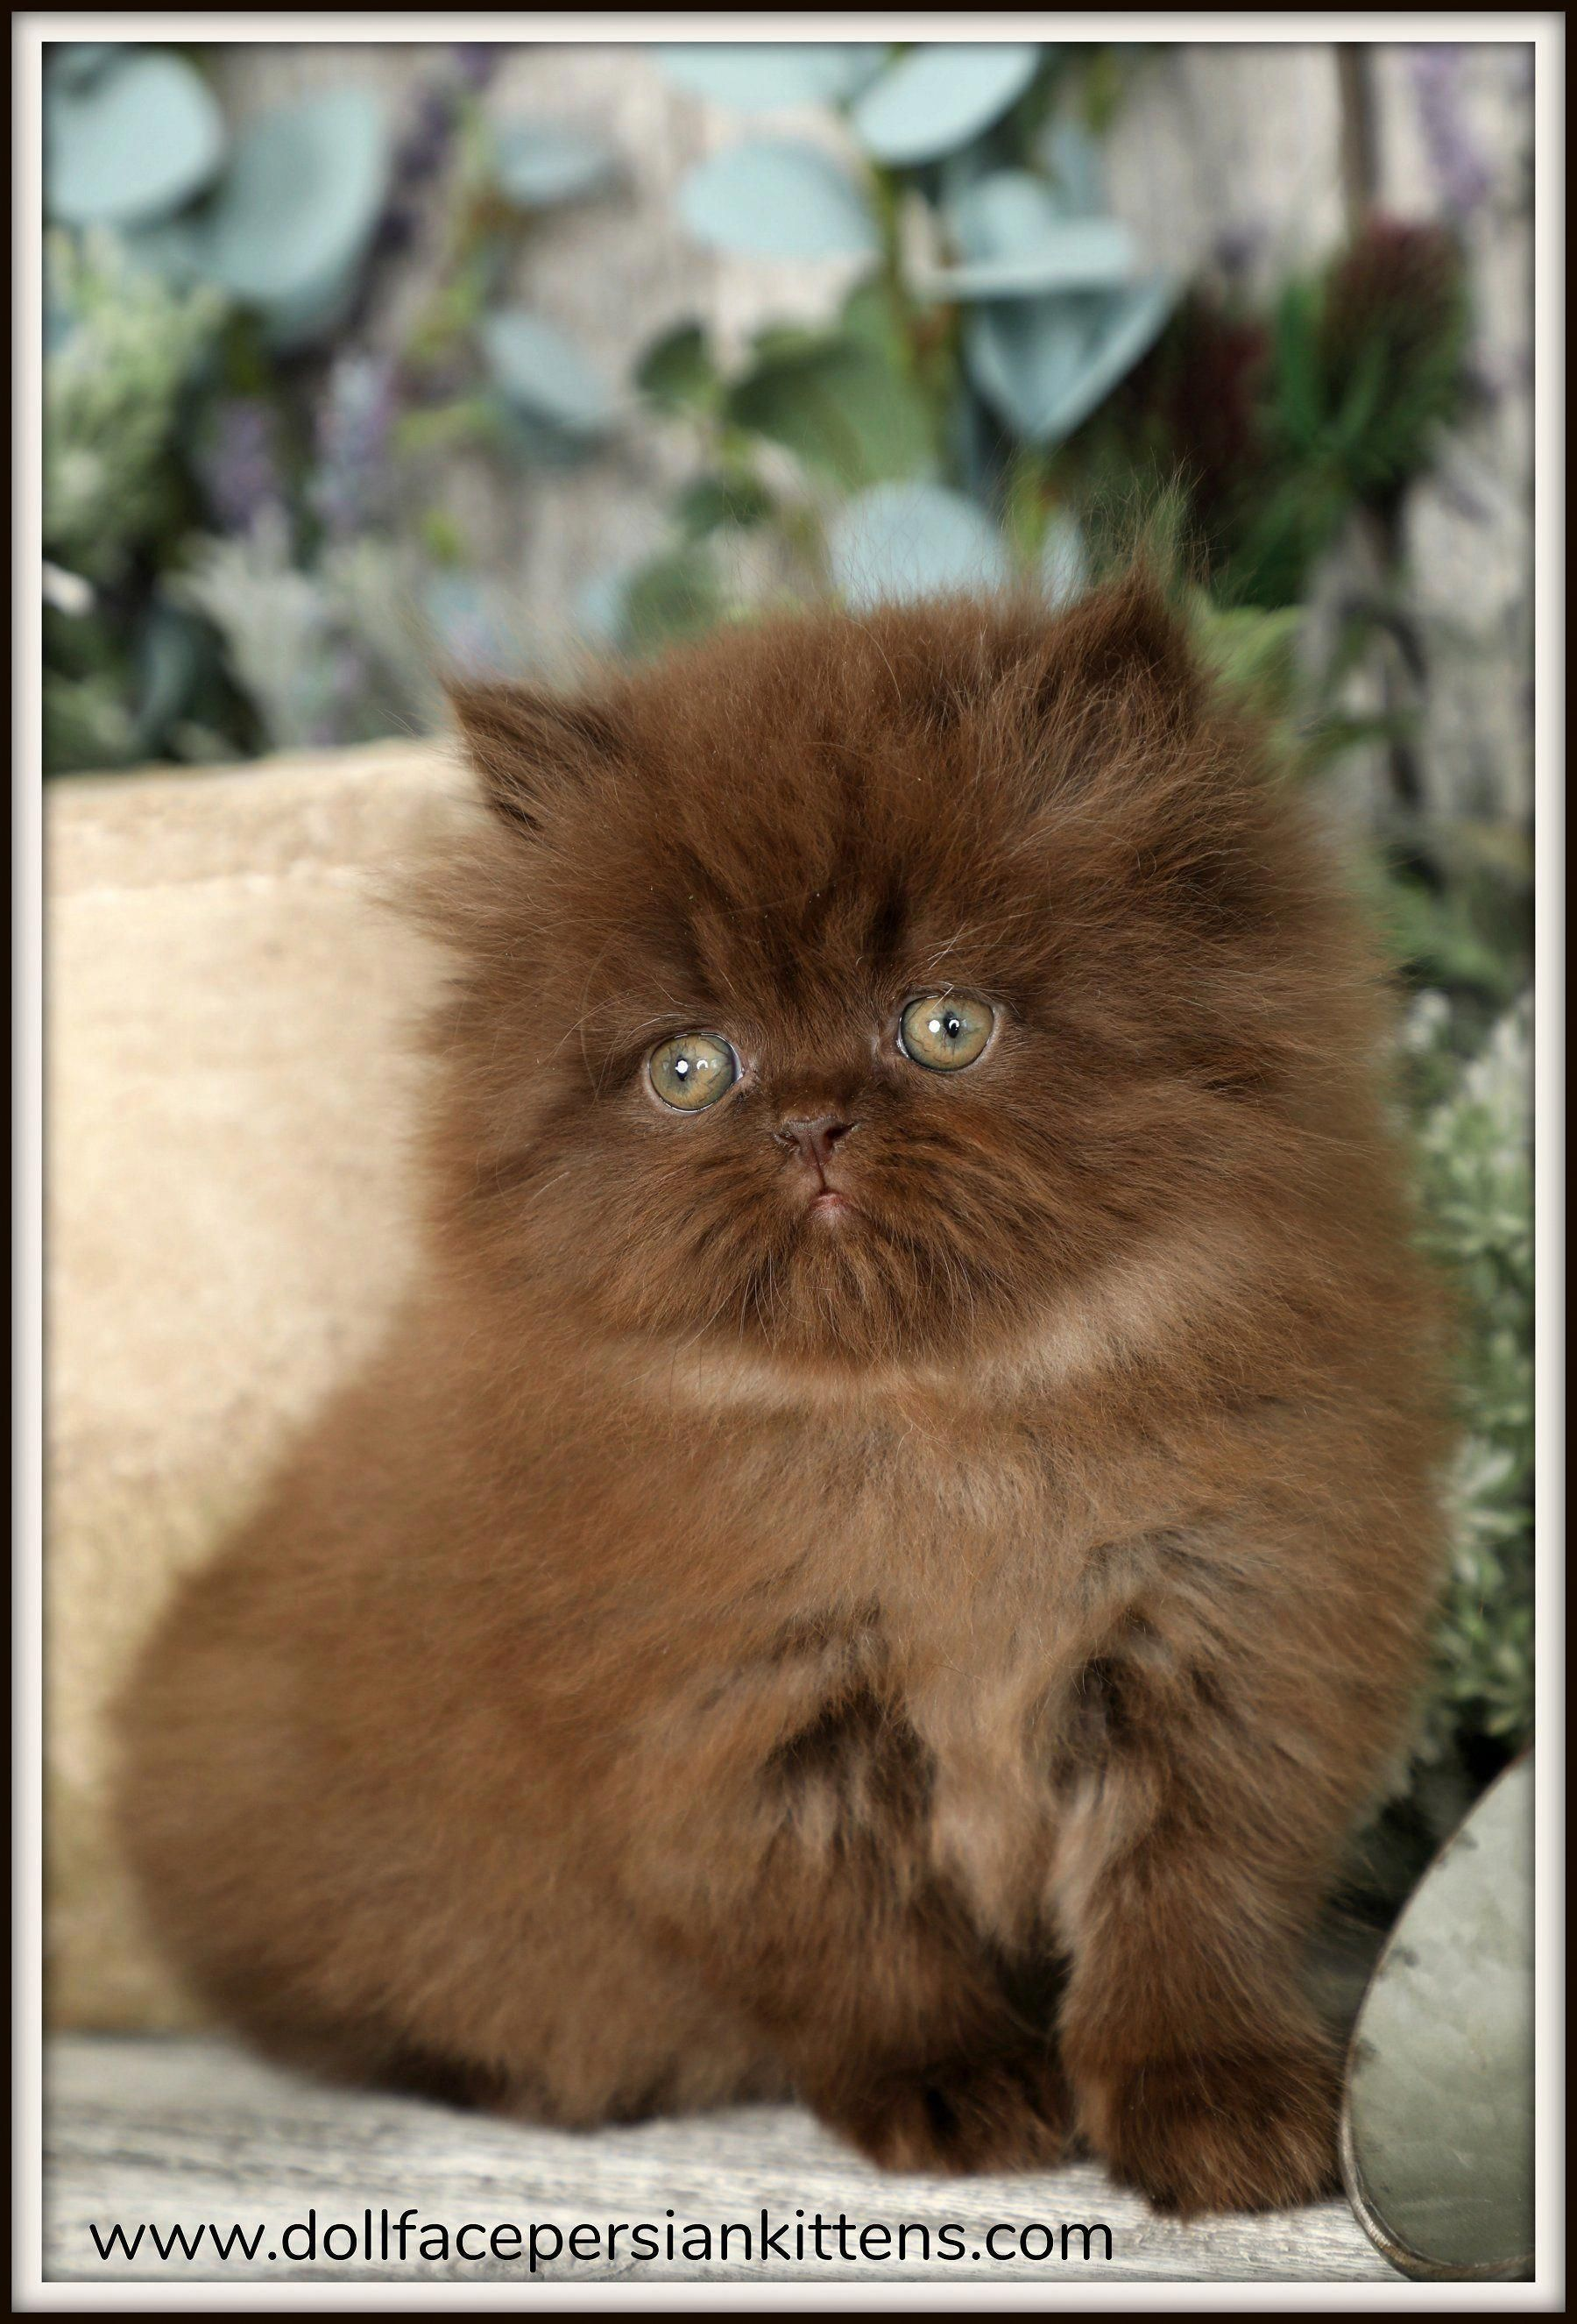 Doll Face Persian Kittens Chocolate Persian Kitten Persiancatchocolate Persiancatdollface Persian Cat Doll Face Persian Kittens Kittens Cutest